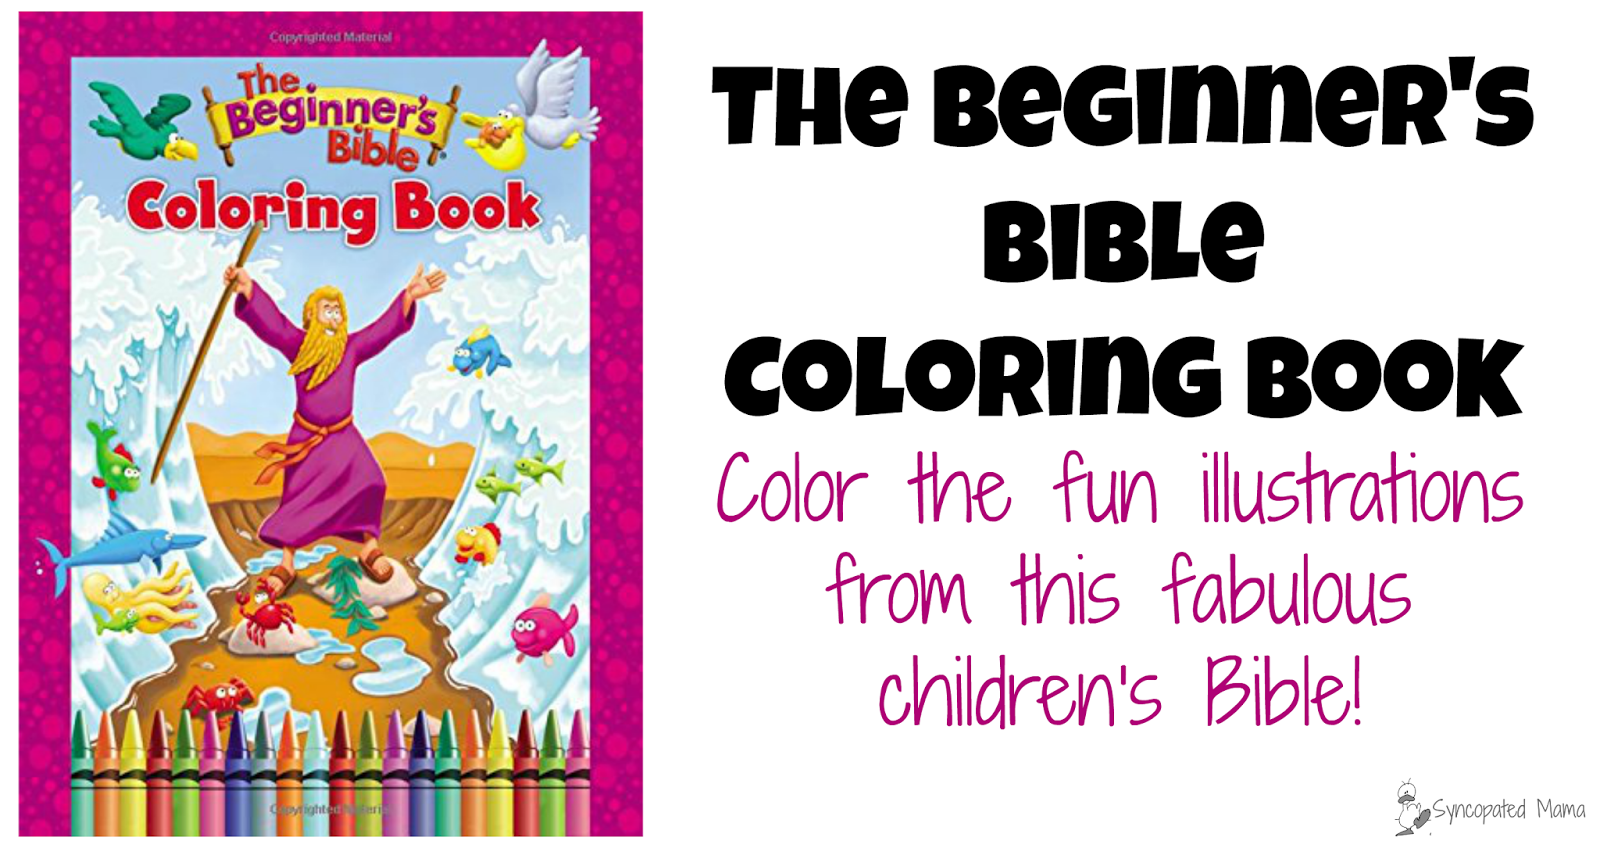 - Syncopated Mama: The Beginner's Bible Coloring Book